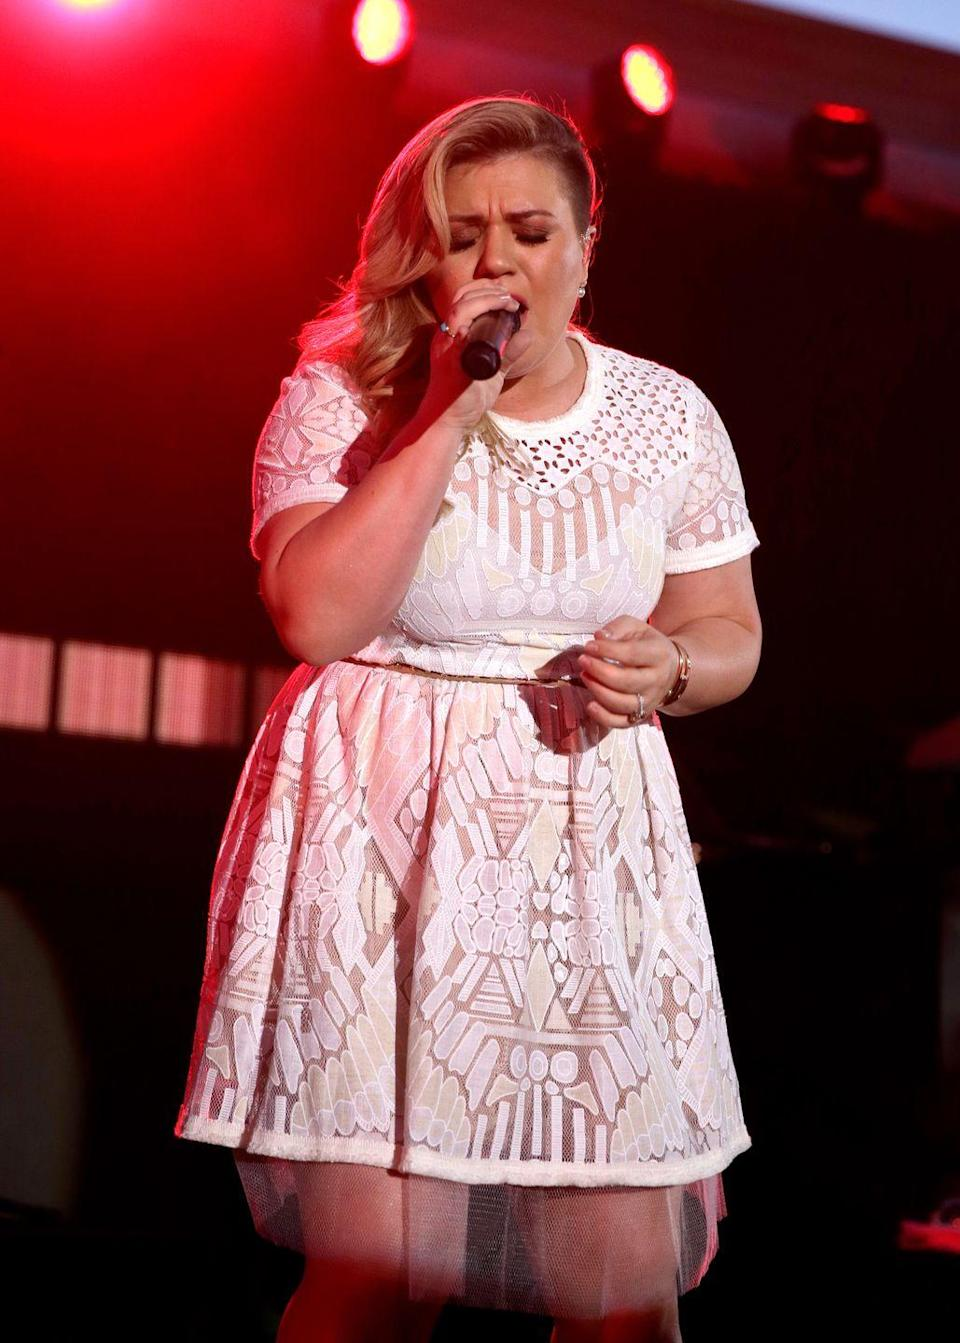 """<p><a href=""""https://www.goodhousekeeping.com/life/entertainment/a31994802/the-voice-2020-kelly-clarkson-coaches-gigi-reaction/"""" rel=""""nofollow noopener"""" target=""""_blank"""" data-ylk=""""slk:Kelly Clarkson"""" class=""""link rapid-noclick-resp"""">Kelly Clarkson</a>'s 2015 hit, """"Piece by Piece"""" is also about her childhood and her parents ― although it's through a different lens this time. She was inspired by her feelings towards her own daughter, River. She told <em><a href=""""https://www.glamour.com/story/kelly-clarkson-piece-by-piece"""" rel=""""nofollow noopener"""" target=""""_blank"""" data-ylk=""""slk:Glamour"""" class=""""link rapid-noclick-resp"""">Glamour</a></em>, """"It's a positive song, even though I know it sounds sad. I don't know what my father went through as a child, and I don't know why he left and made the decisions he made, but everyone's human."""" </p>"""